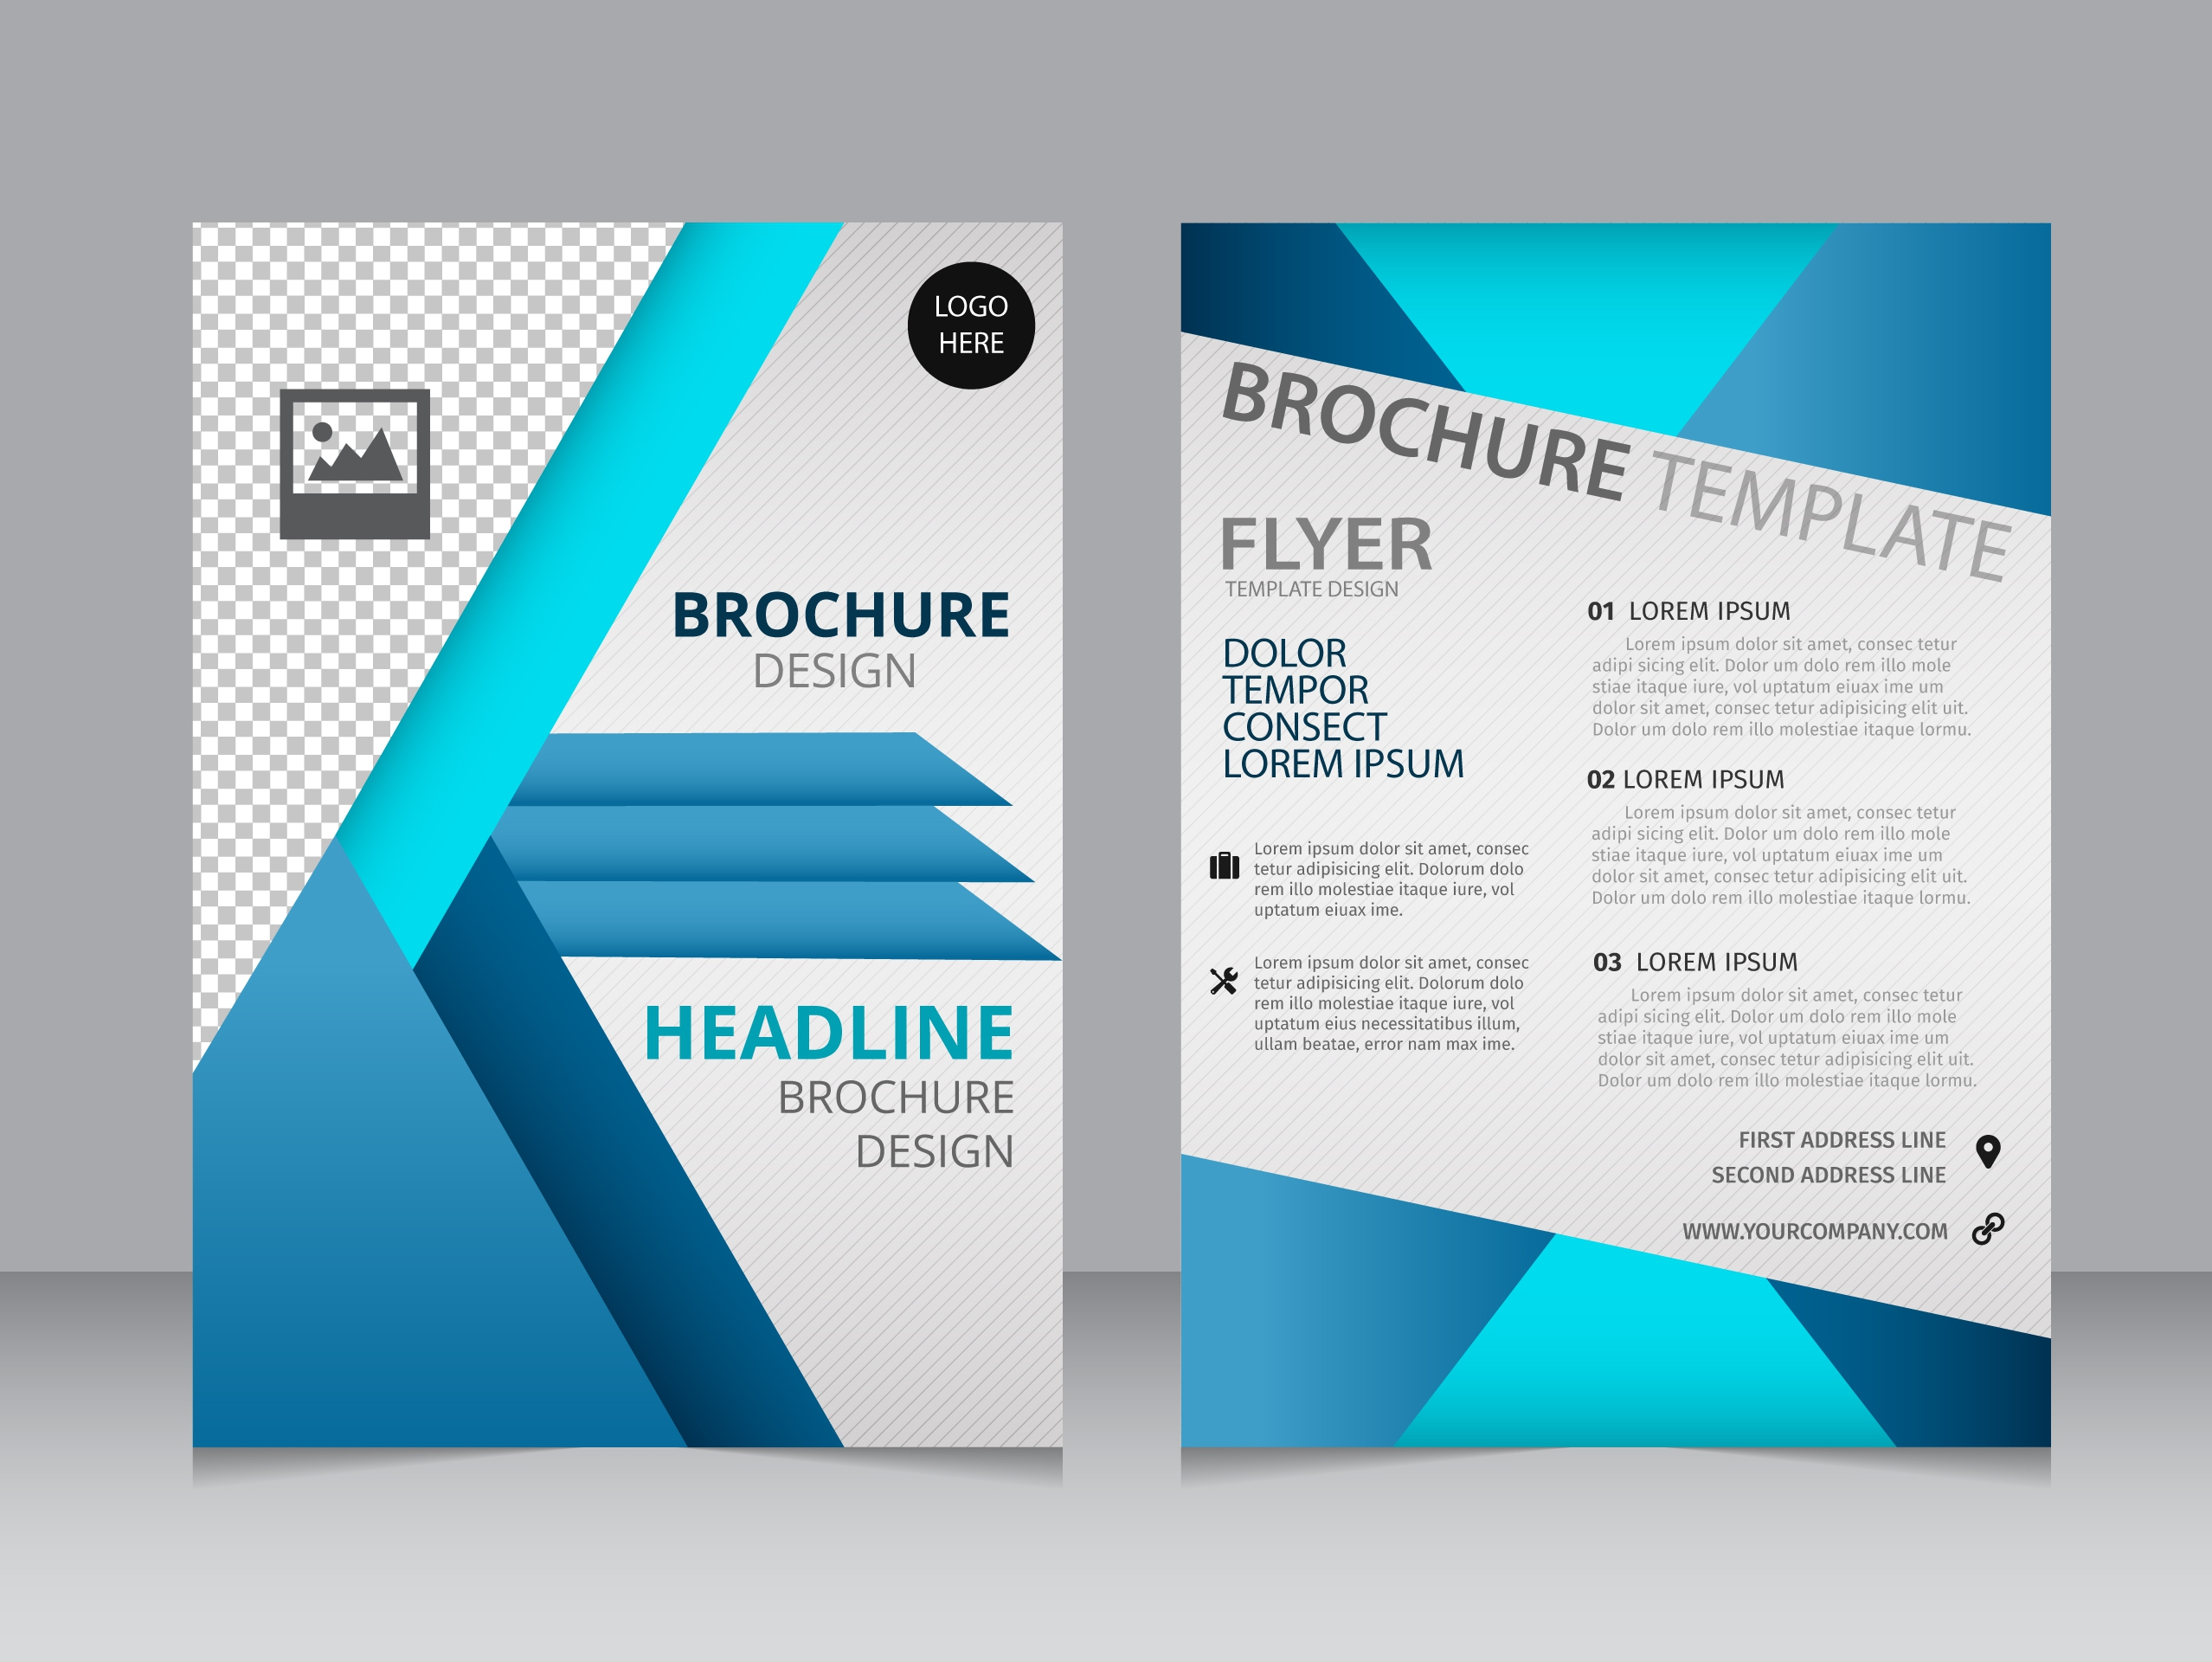 free template brochure design - 11 free sample travel brochure templates printable samples